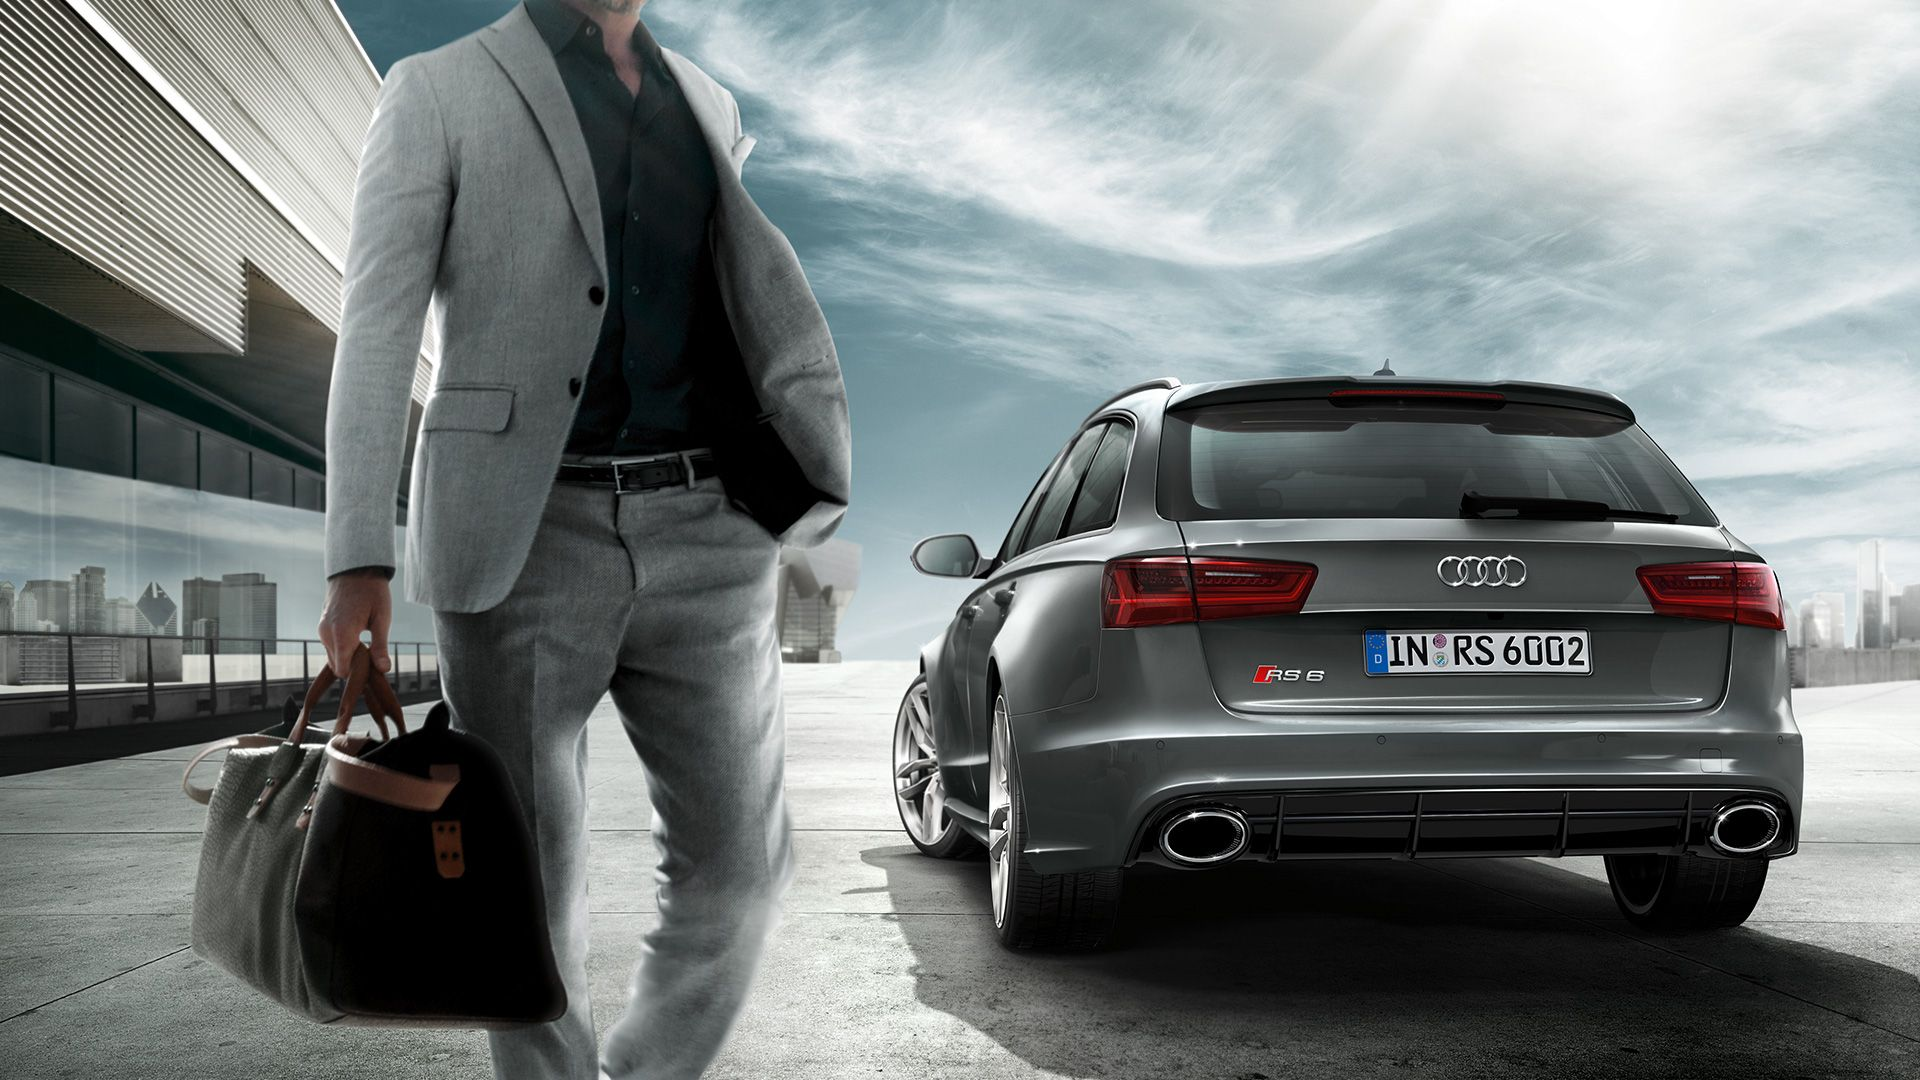 Audi Rs Wallpapers Top Free Audi Rs Backgrounds